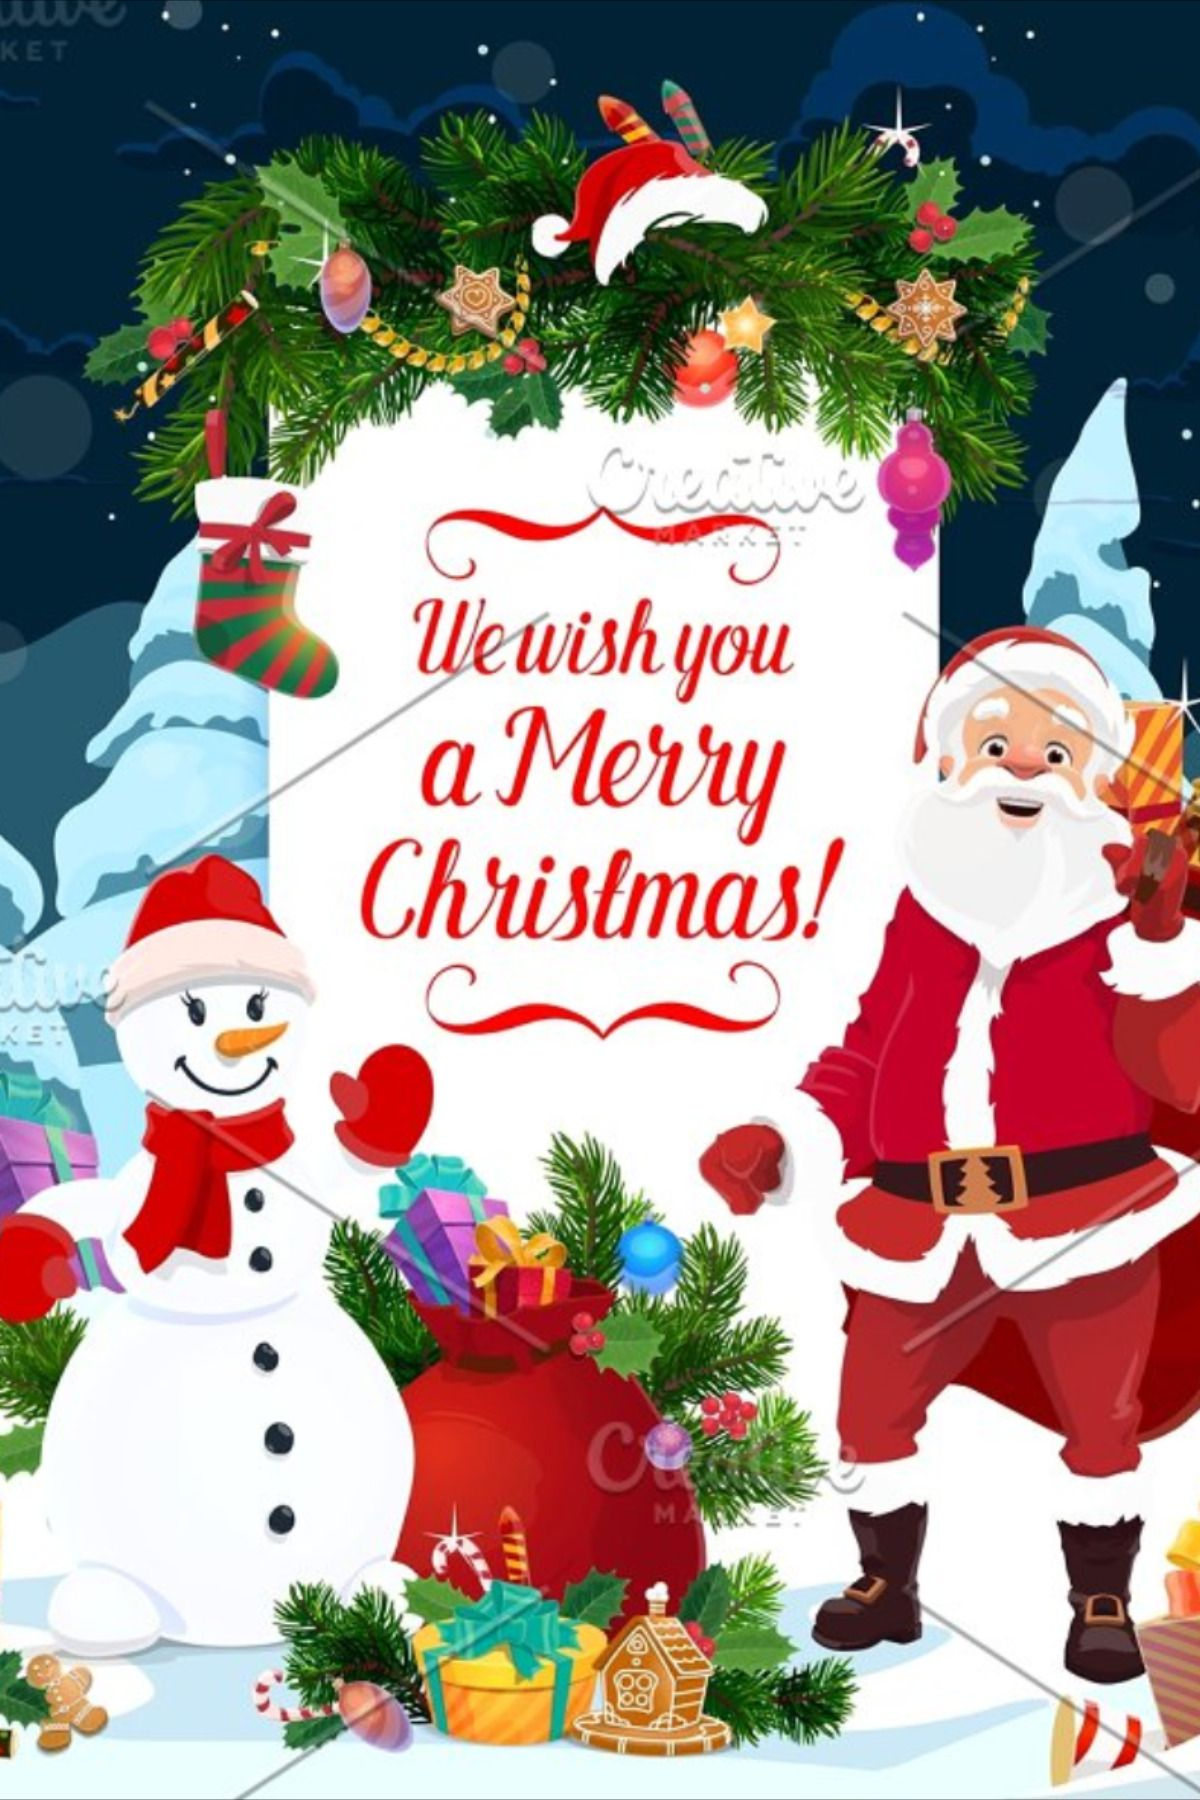 Santa Snowman And Christmas Gifts With Images Christmas Gifts New Year Greeting Cards Christmas Ornaments